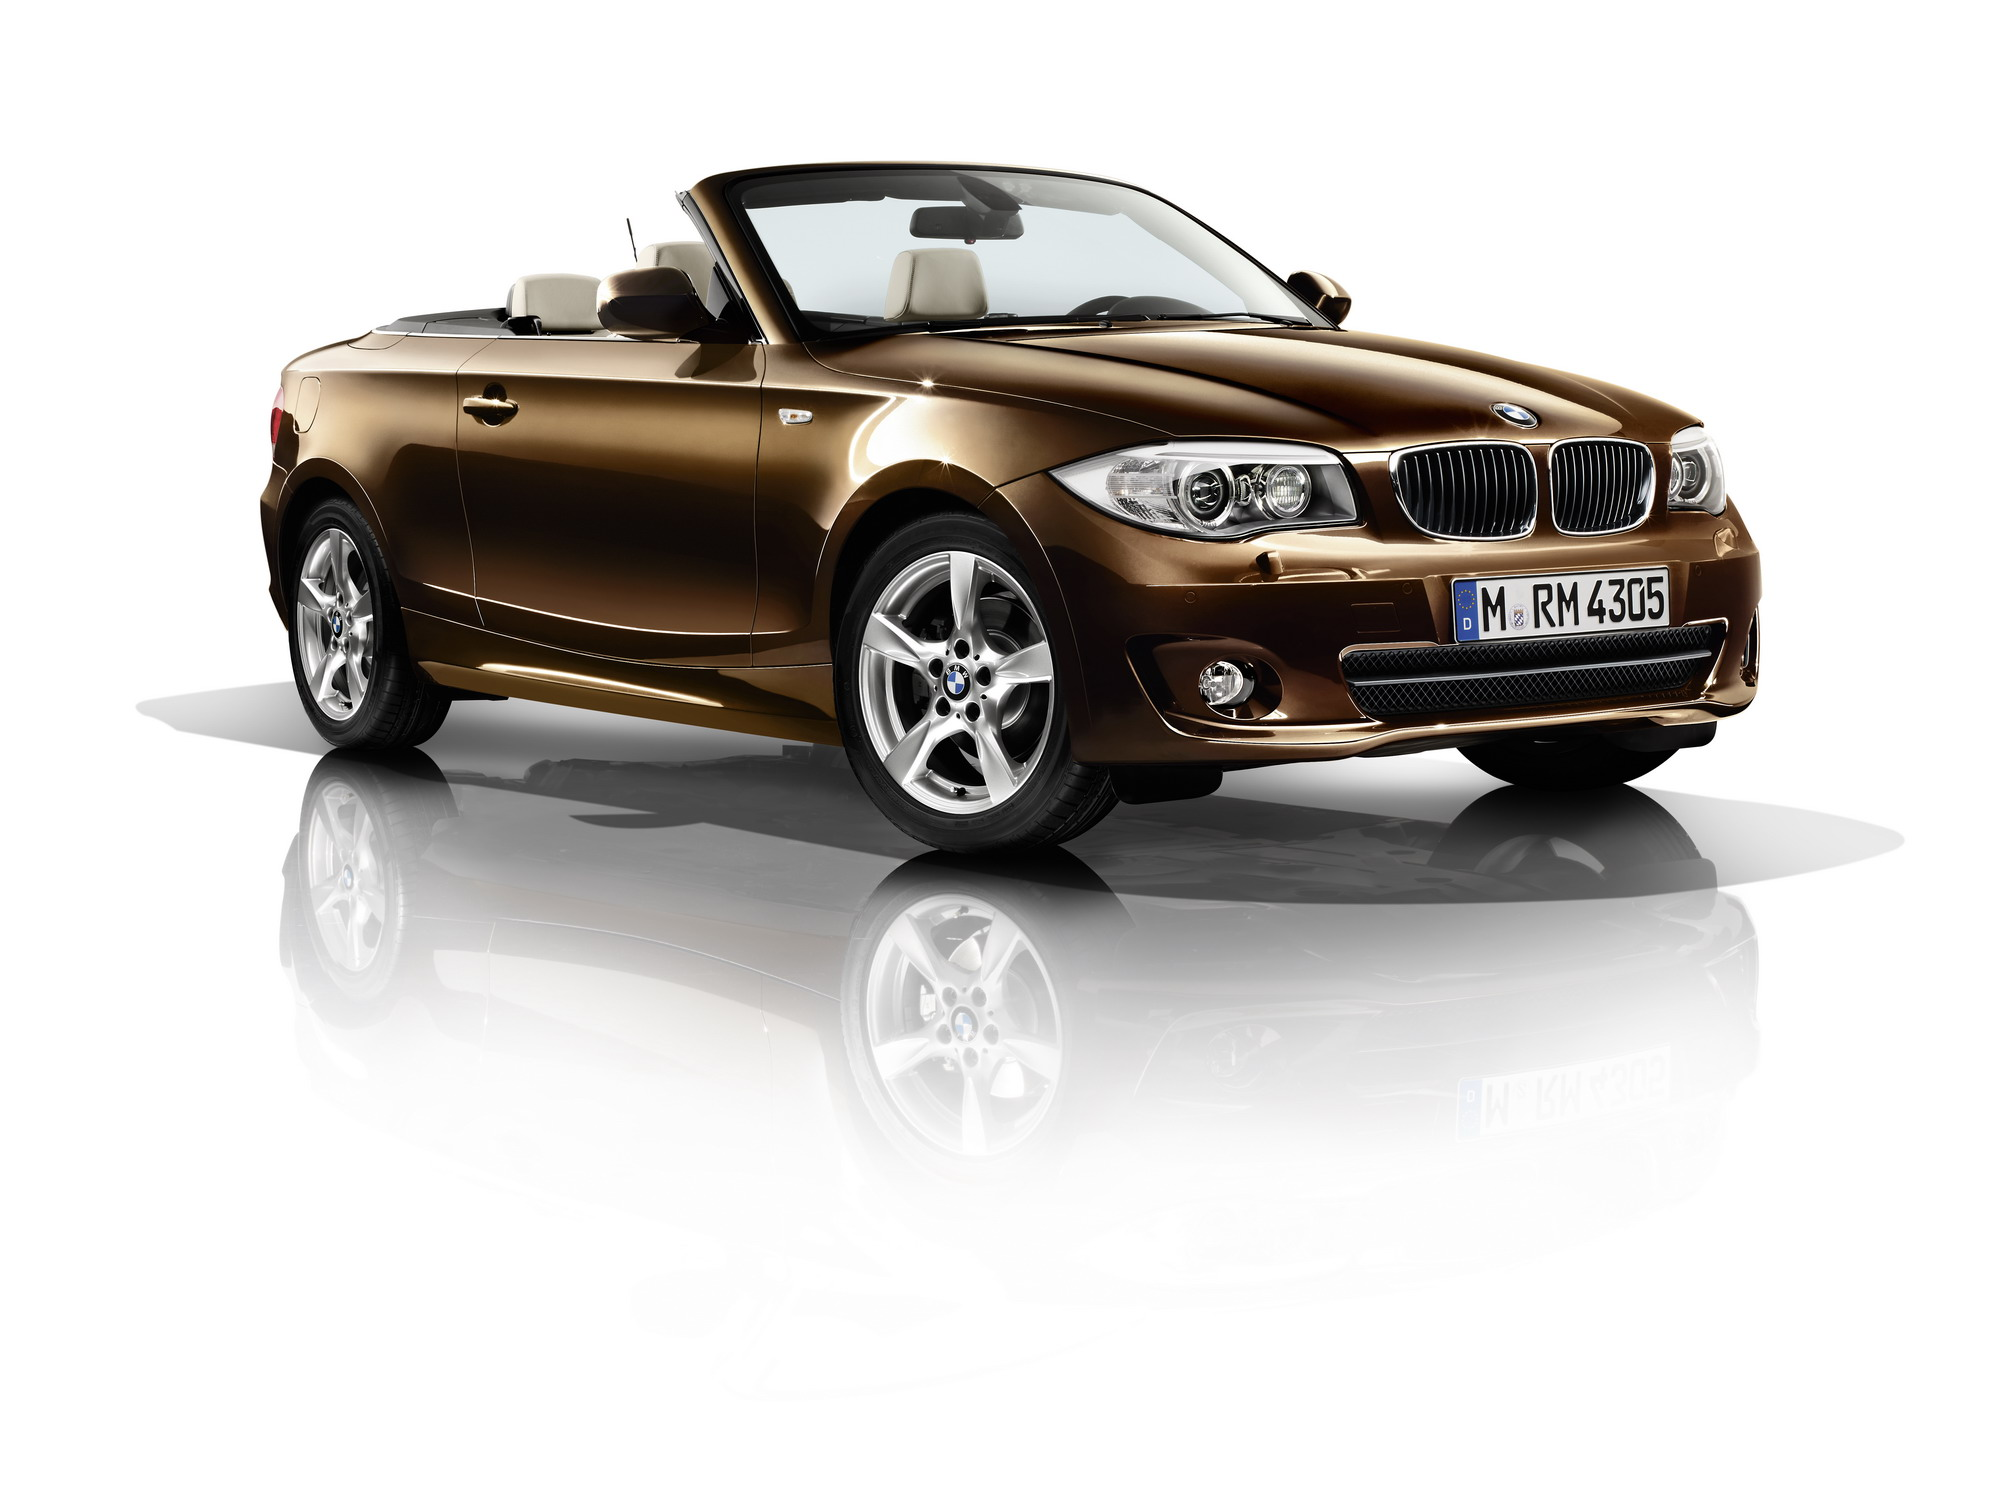 2012 - 2013 BMW 1 Series | Top Speed